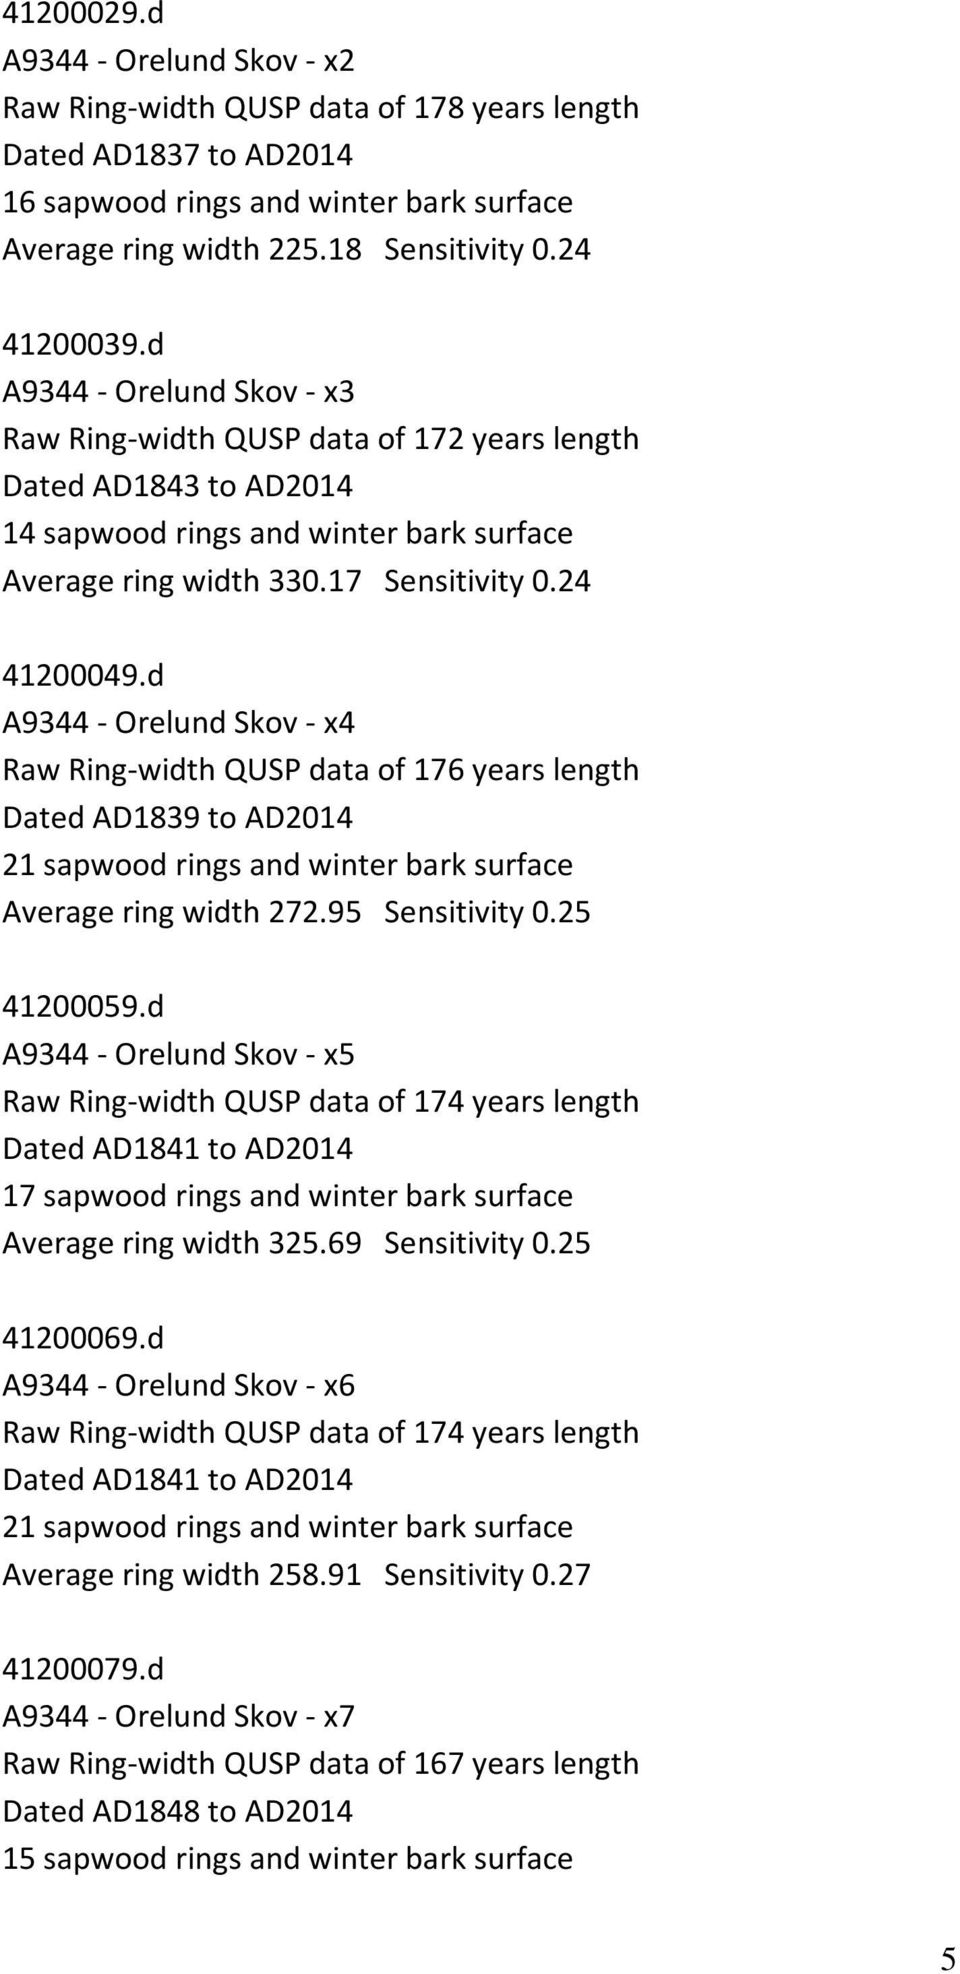 d A9344 - Orelund Skov - x4 Raw Ring-width QUSP data of 176 years length Dated AD1839 to AD2014 21 sapwood rings and winter bark surface Average ring width 272.95 Sensitivity 0.25 41200059.